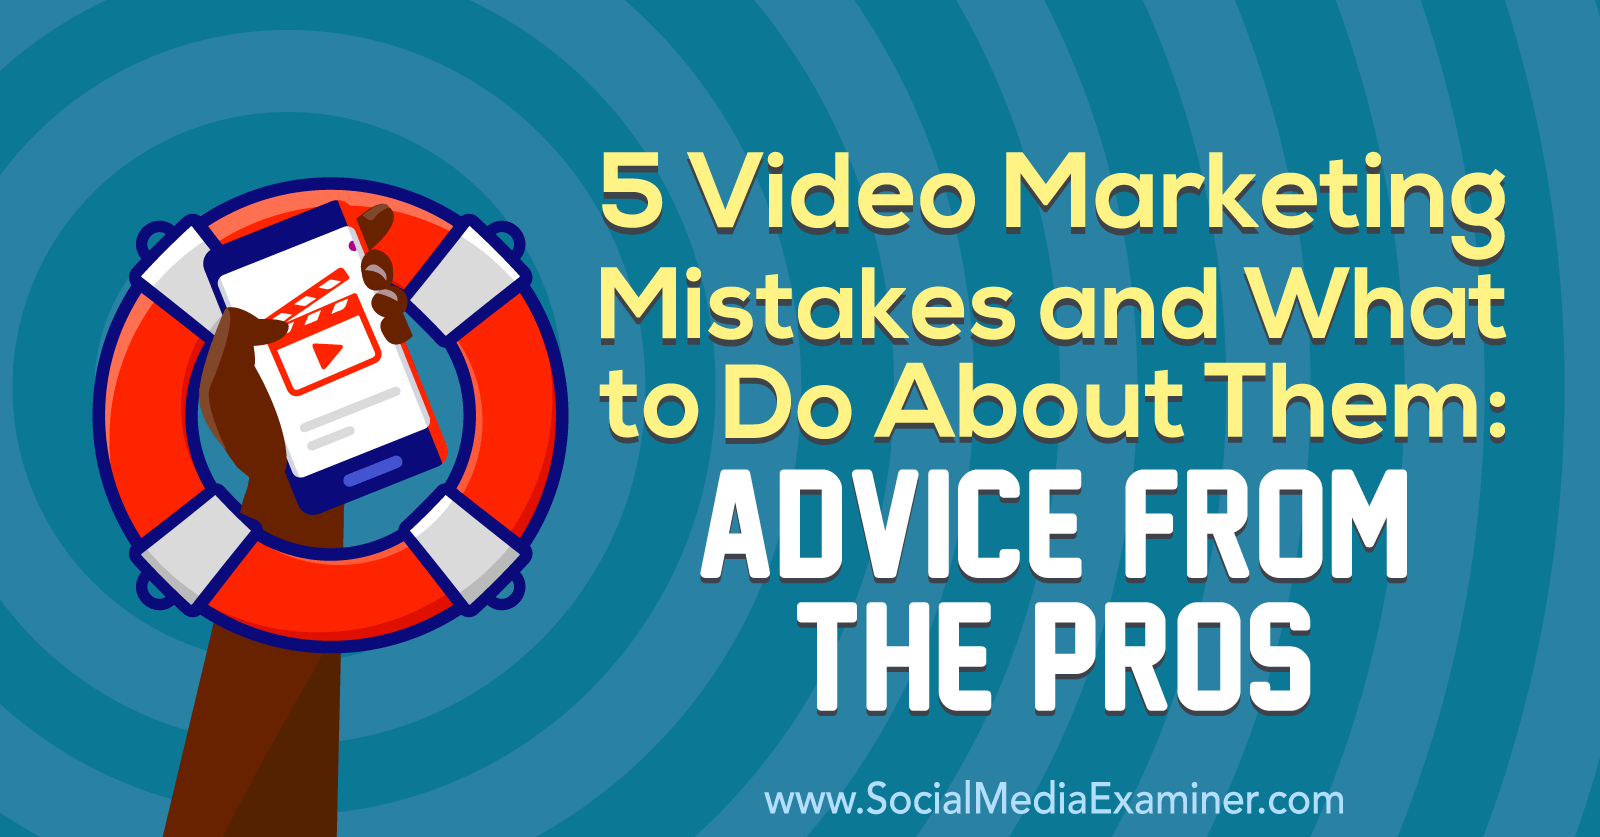 5 Video Marketing Mistakes and What to Do About Them: Advice From the Pros by Lisa D. Jenkins on Social Media Examiner.